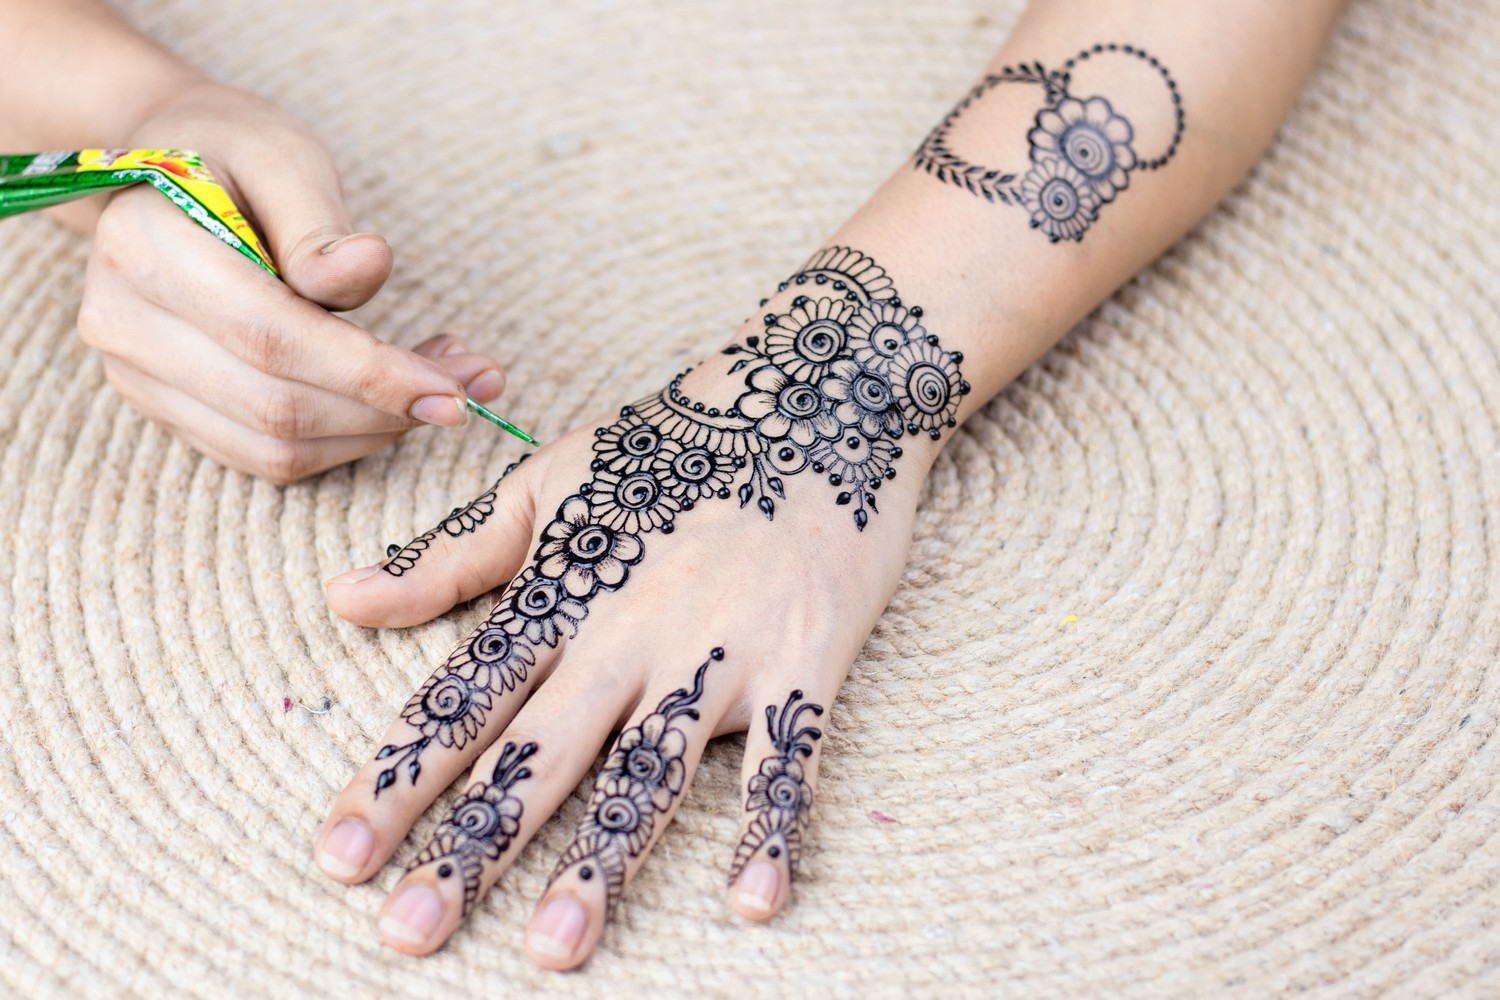 person applying henna stain tattoo to their other hand, with a cream roped rug below.